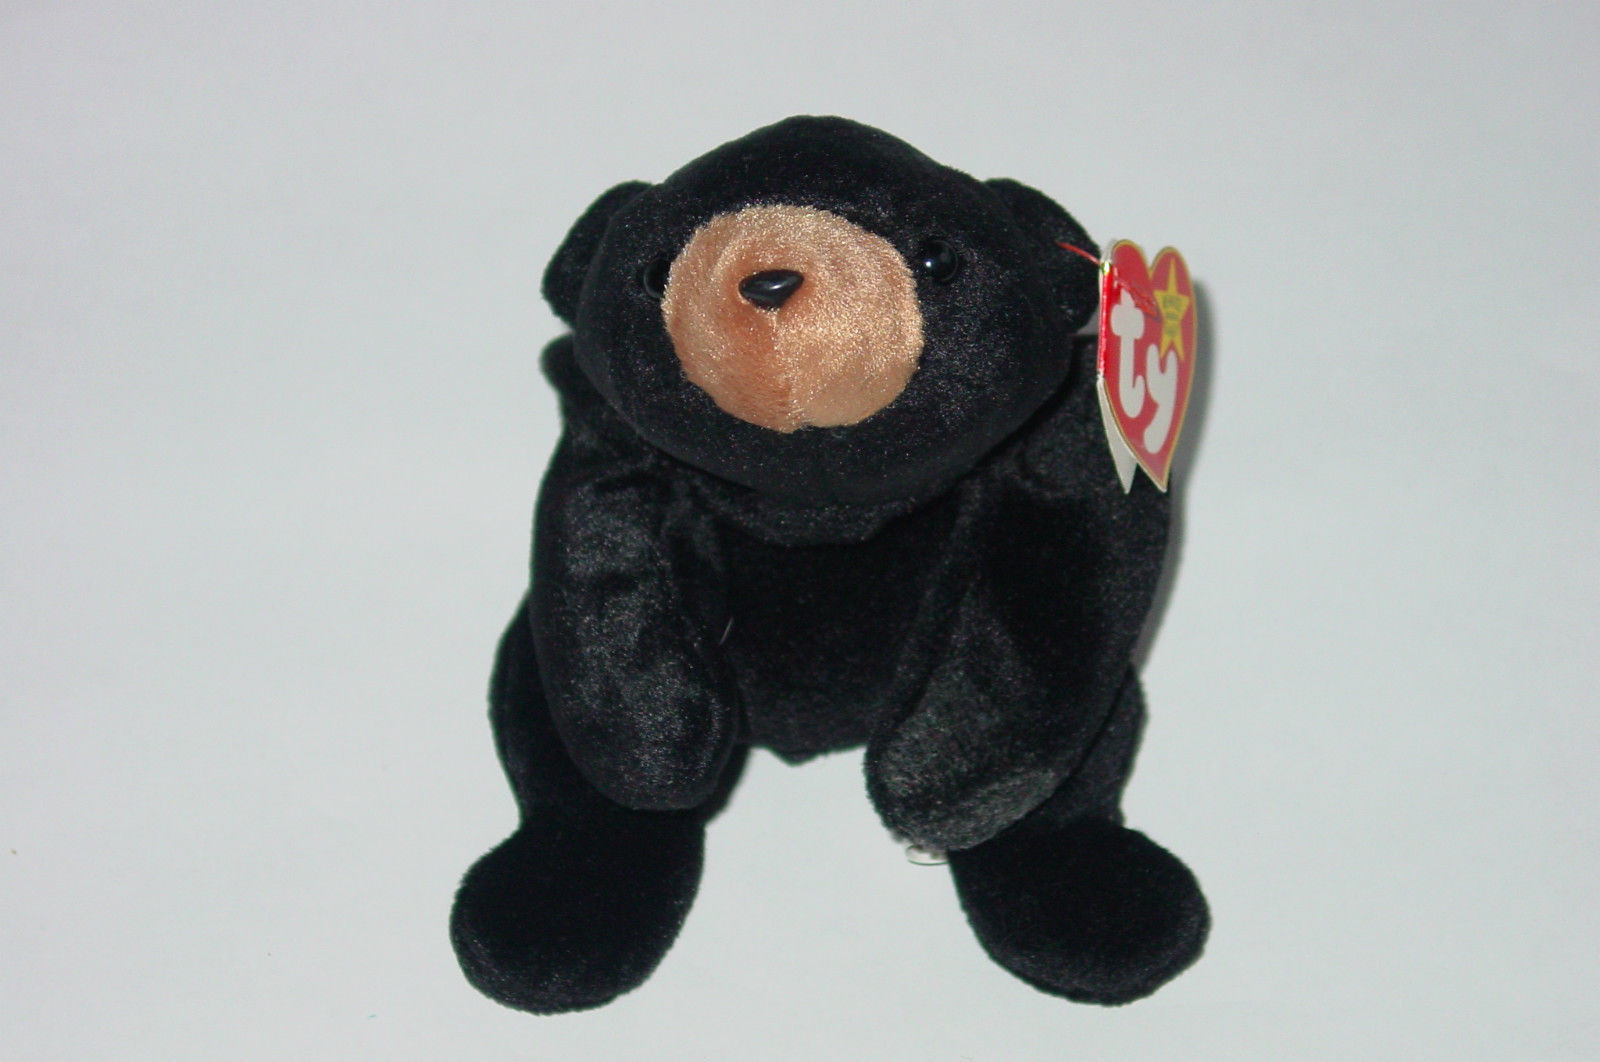 223f18764bf Ty Beanie Baby Blackie Bear Beanbag Plush and 50 similar items. kgrhqvhjcme  iwd7j bqzk3yh zg 60 57